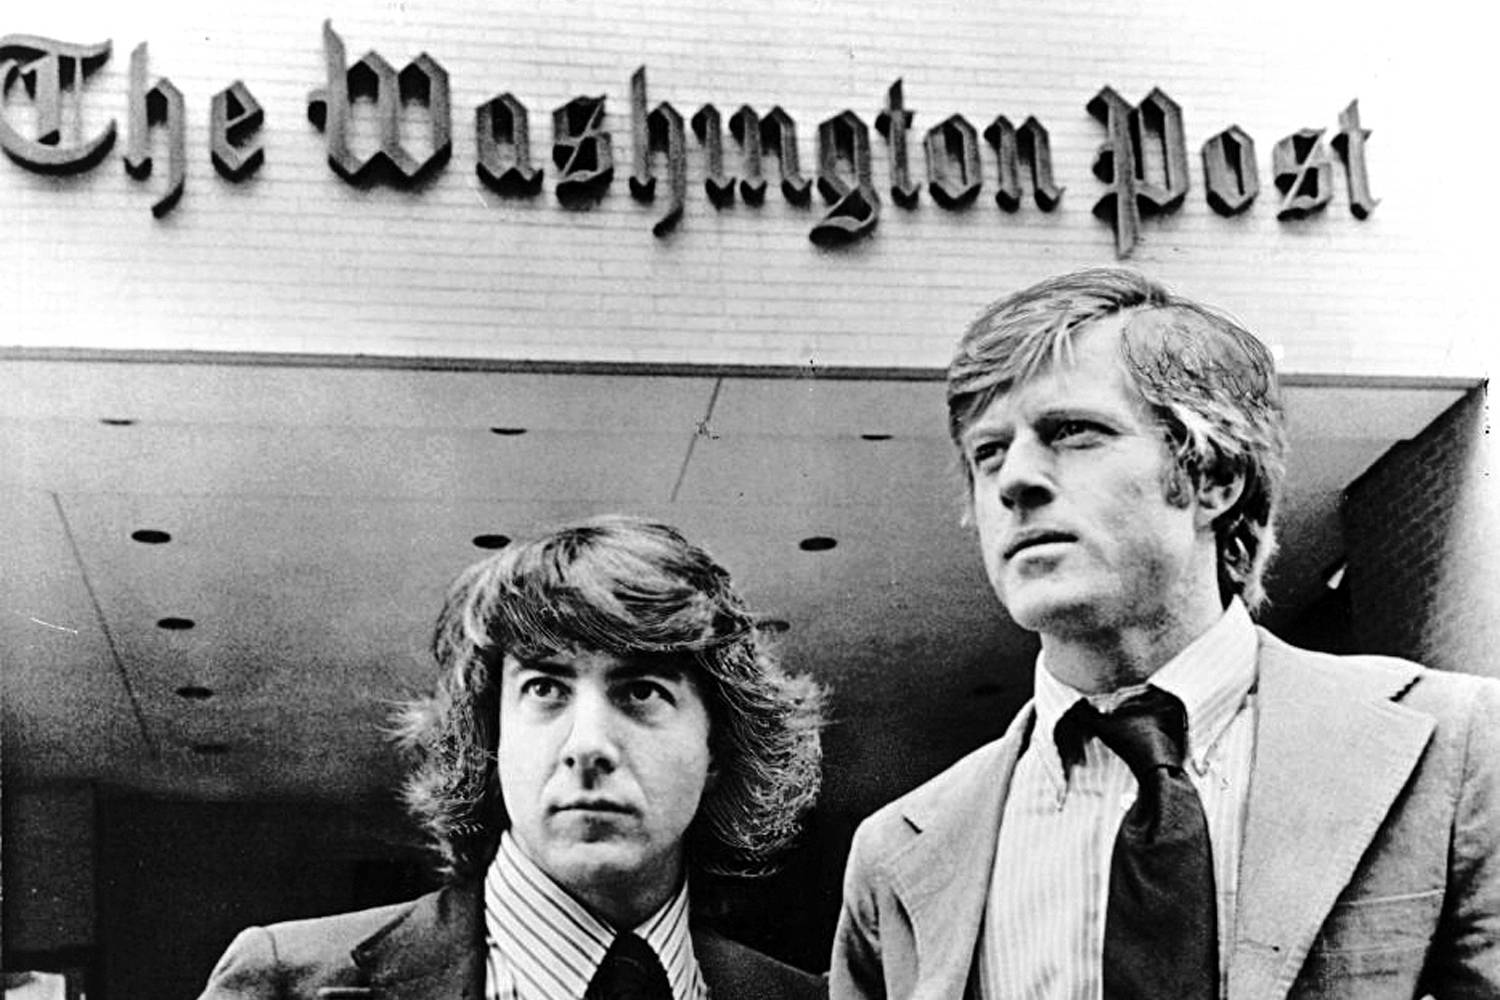 an analysis of the characters is the movie all the presidents men All the president's men is a quintessential american movie: all the presidents men is a thinking man's political thriller featuring two crusading journalists.